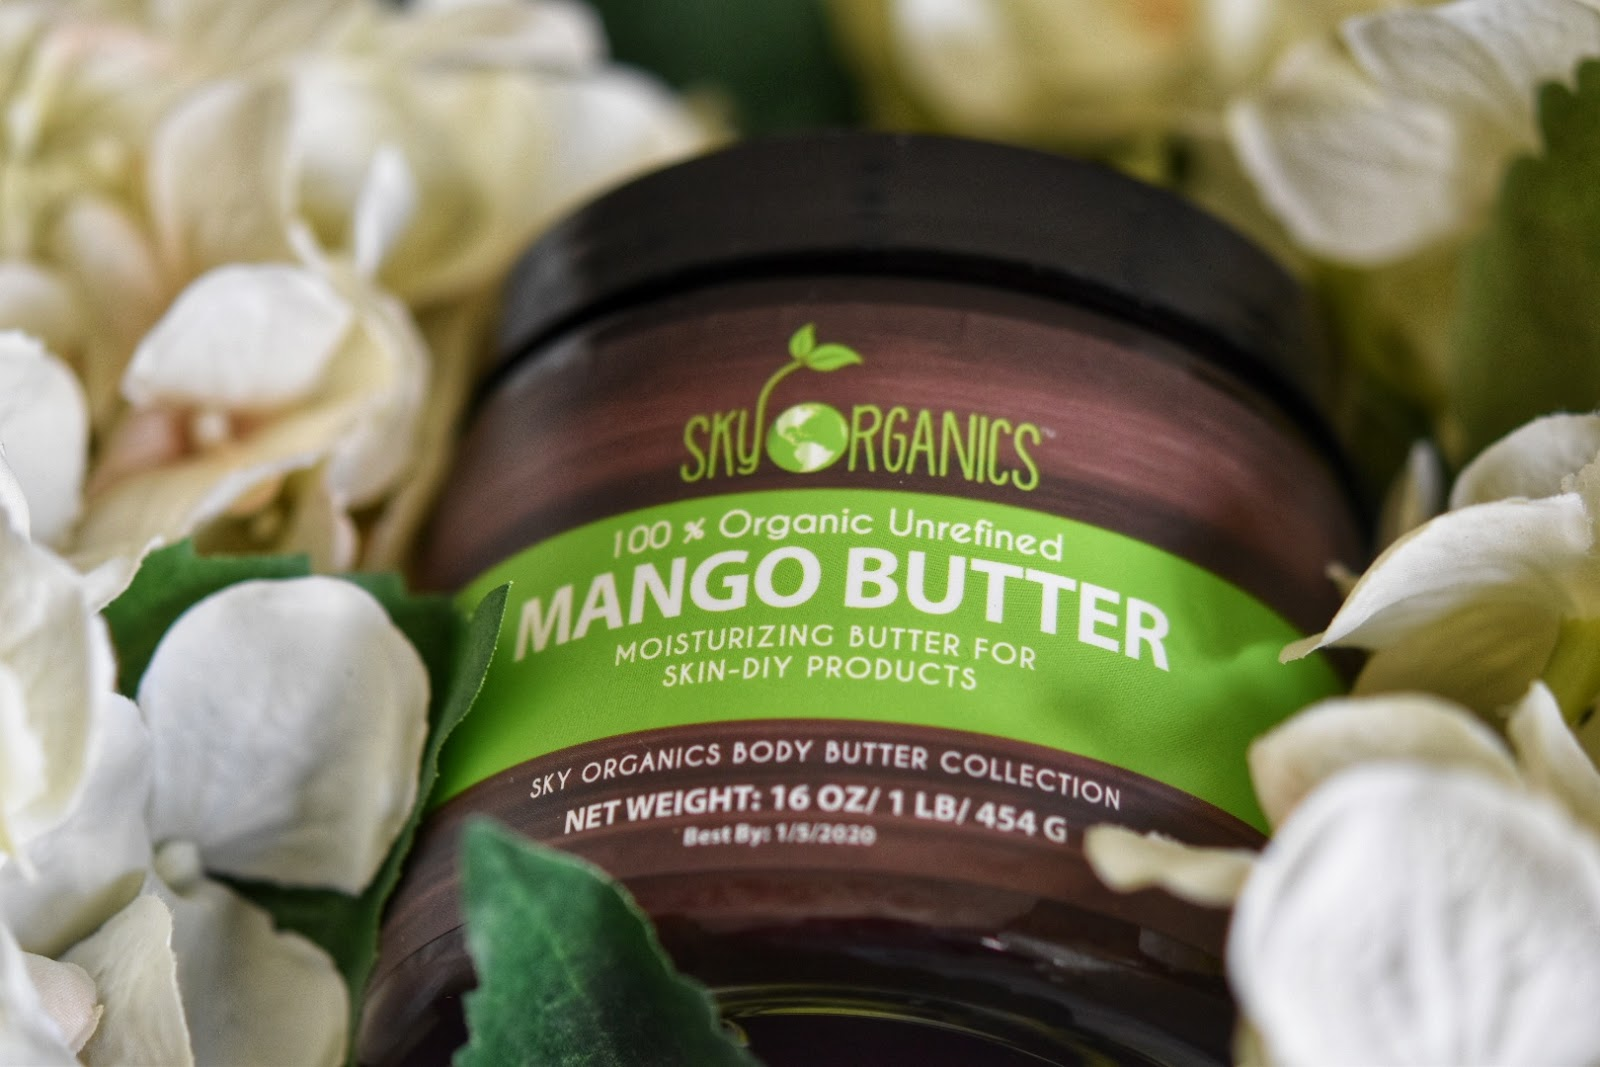 Mango Butter Has Multiple Uses: Top 8 List to Keep You Moisturized Organically  via  www.productreviewmom.com